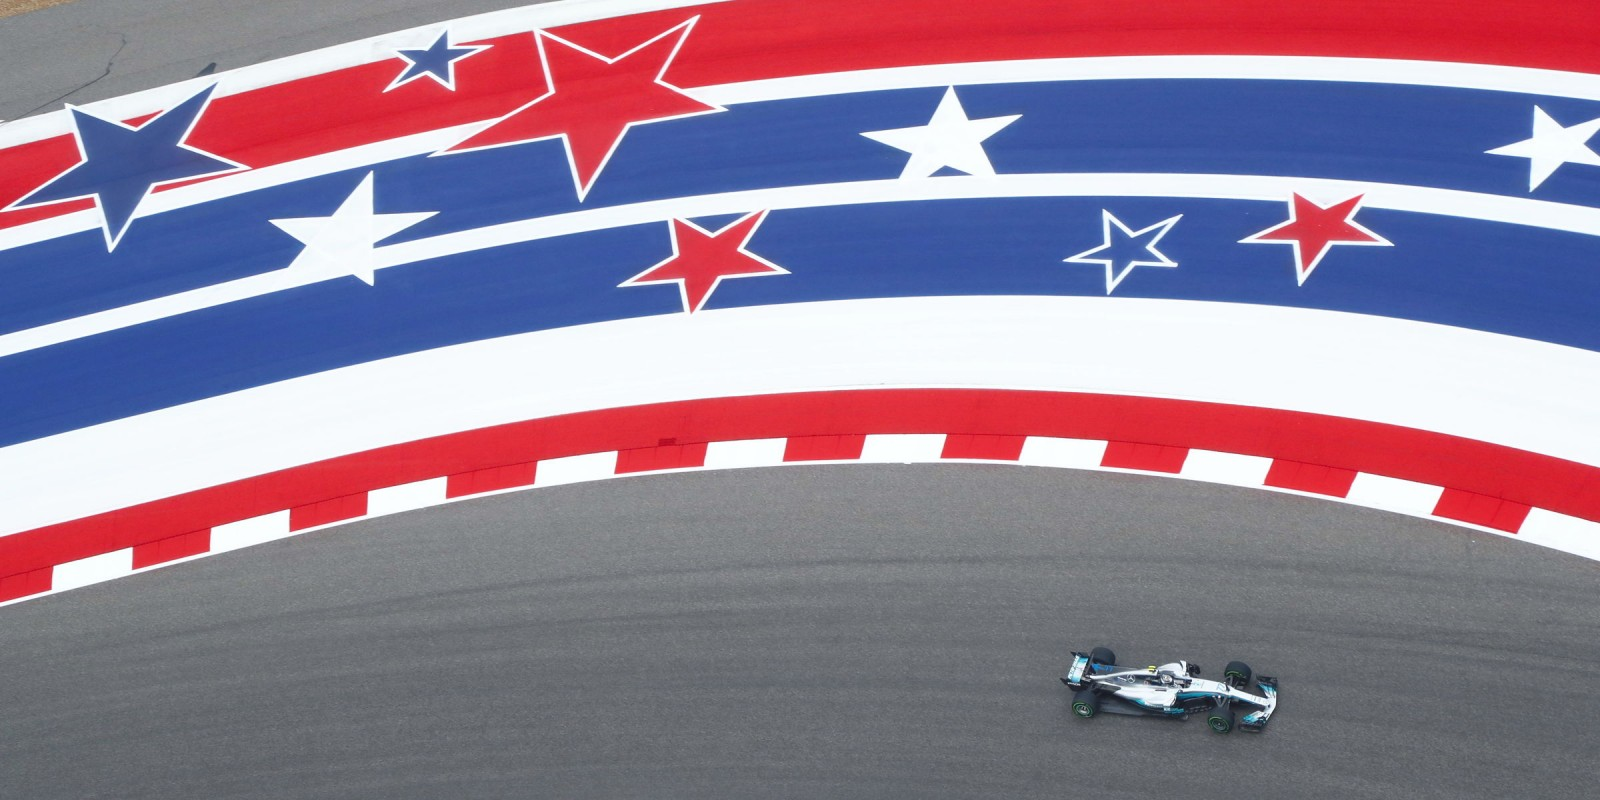 Saturday images from the 2017 US F1 Grand Prix